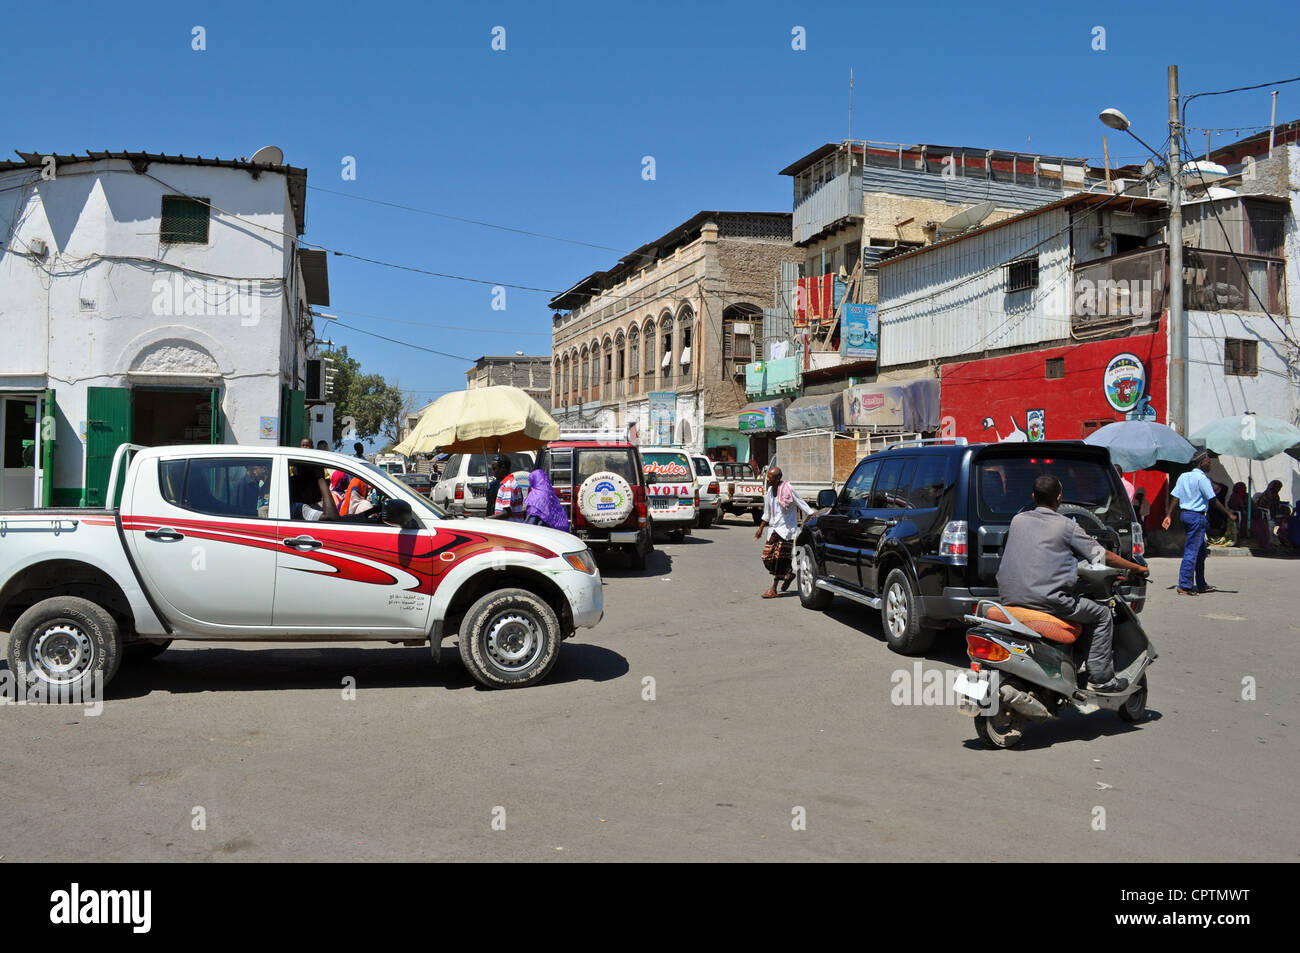 Street scene in Djibouti City - Stock Image